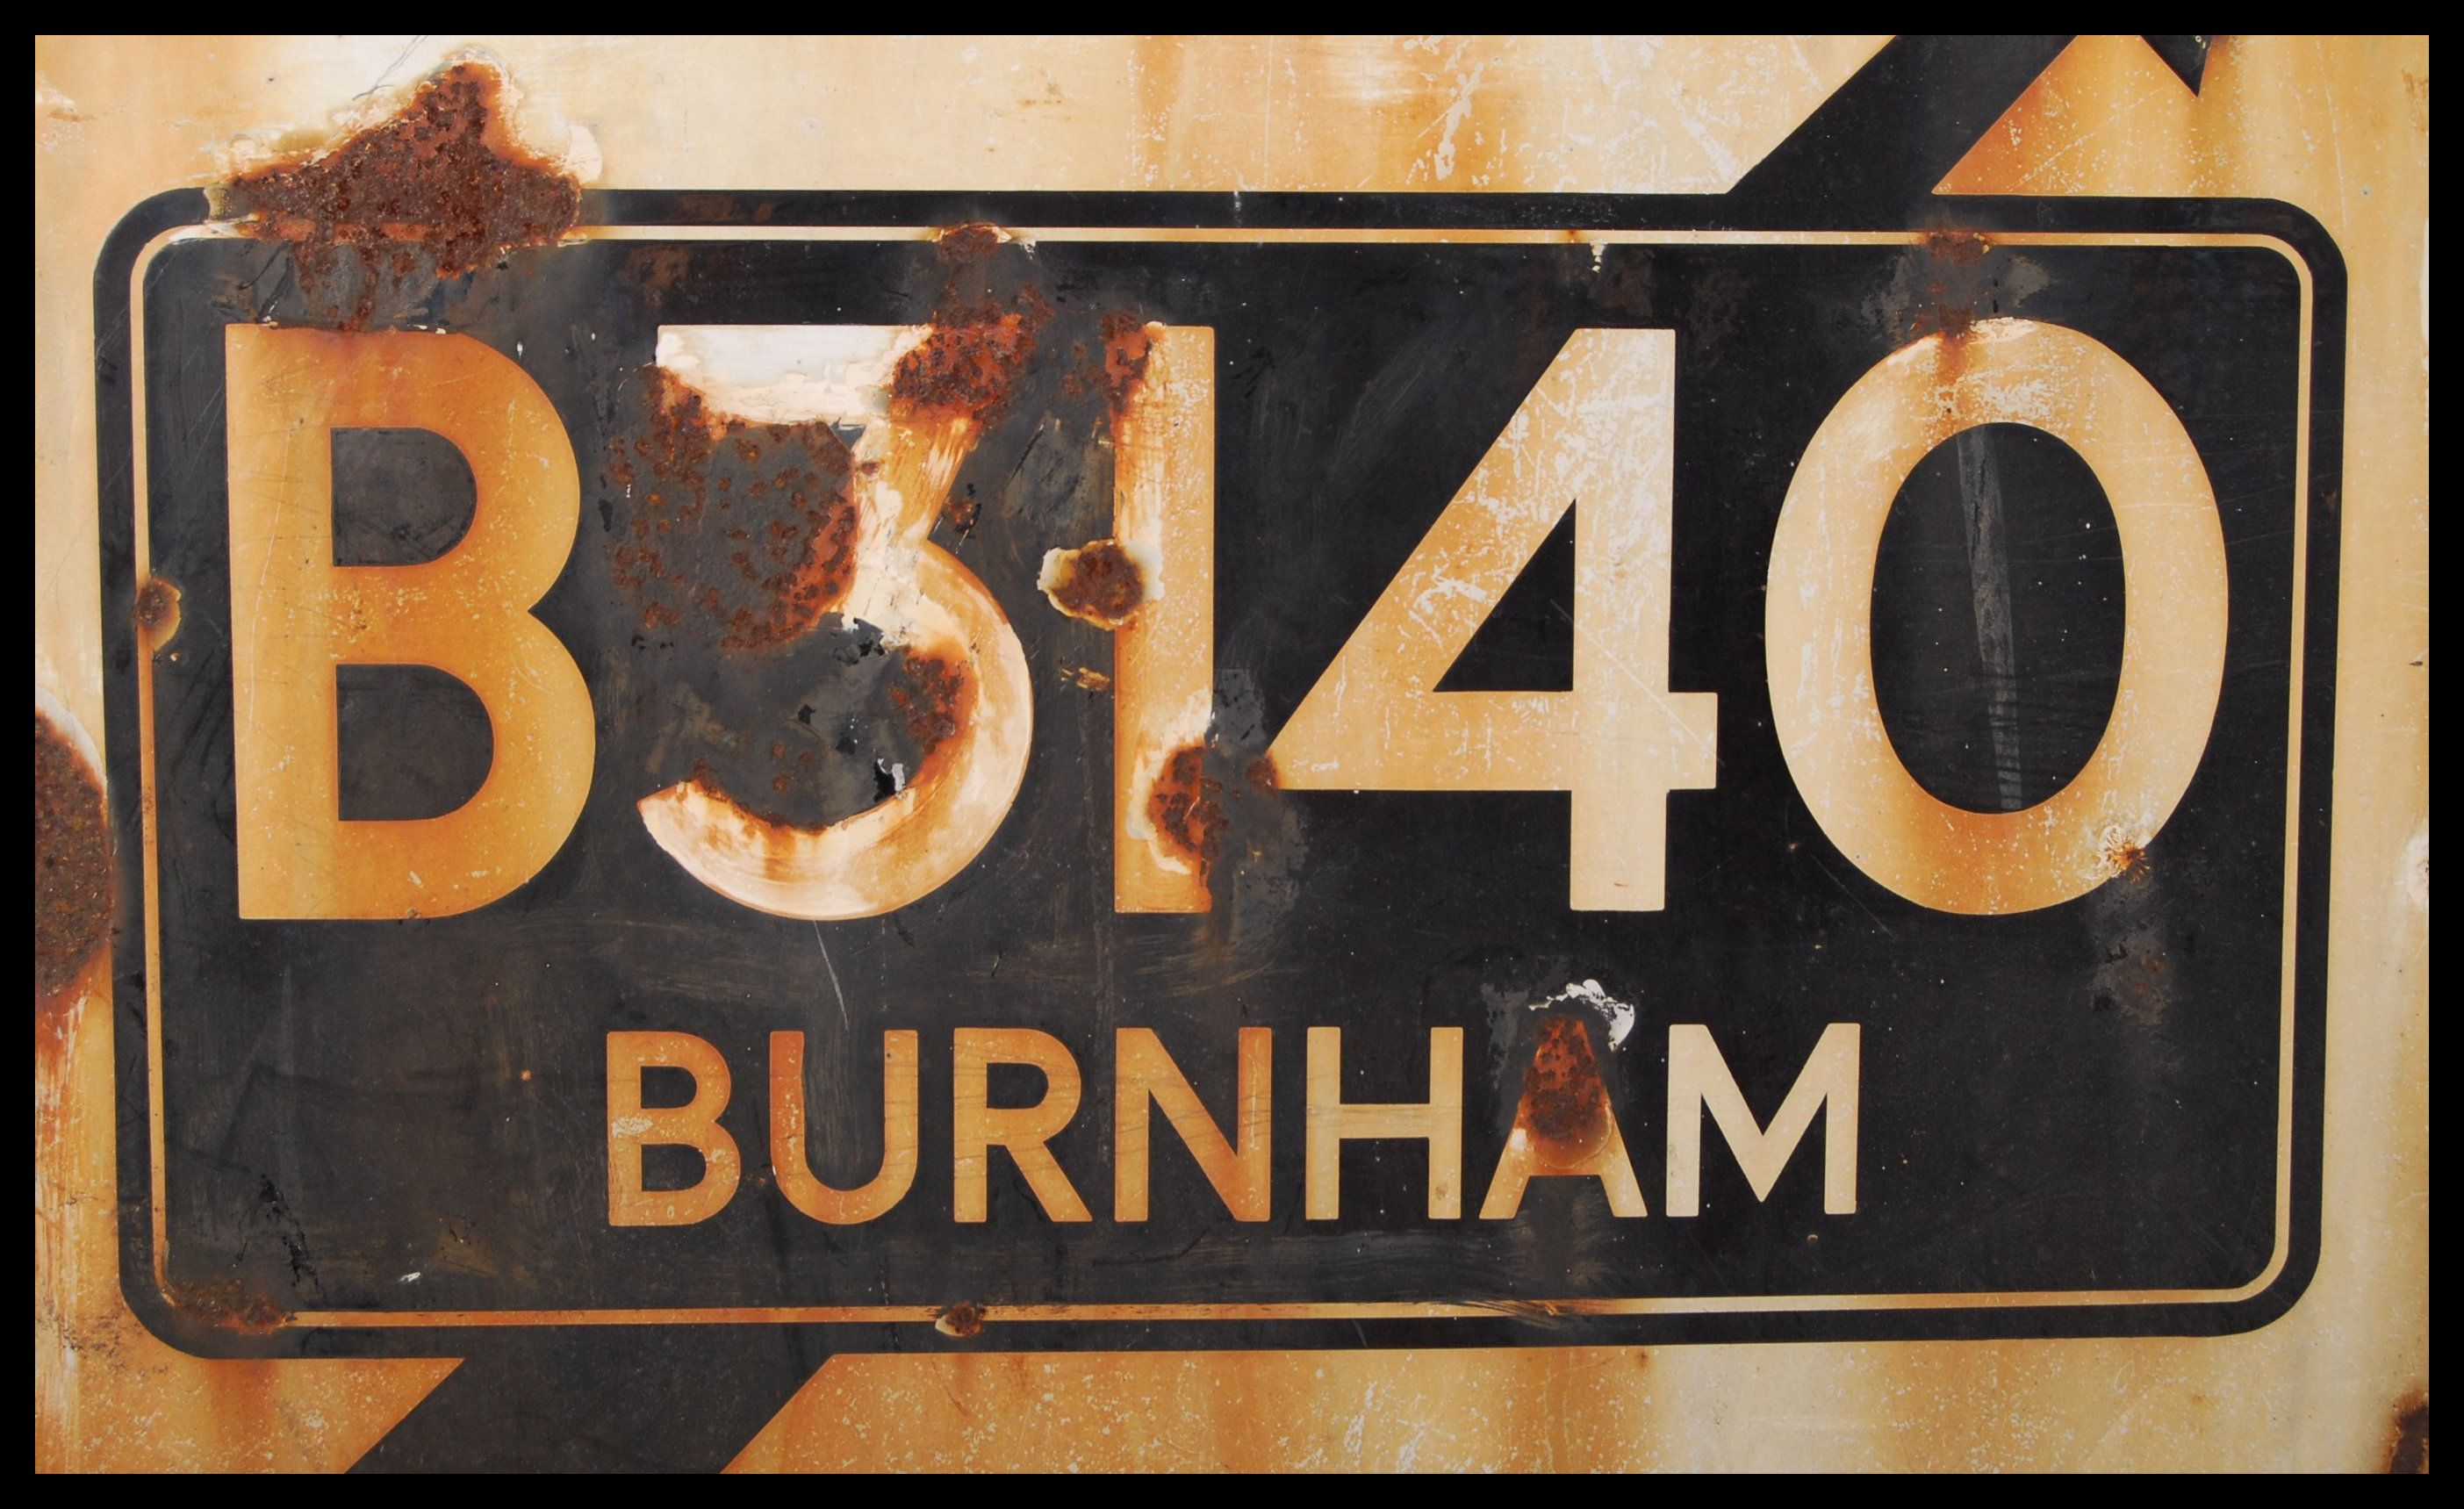 RARE ORIGINAL 1960'S RAC ENAMEL ROAD SIGN FOR BURNHAM ON SEA - Image 2 of 4